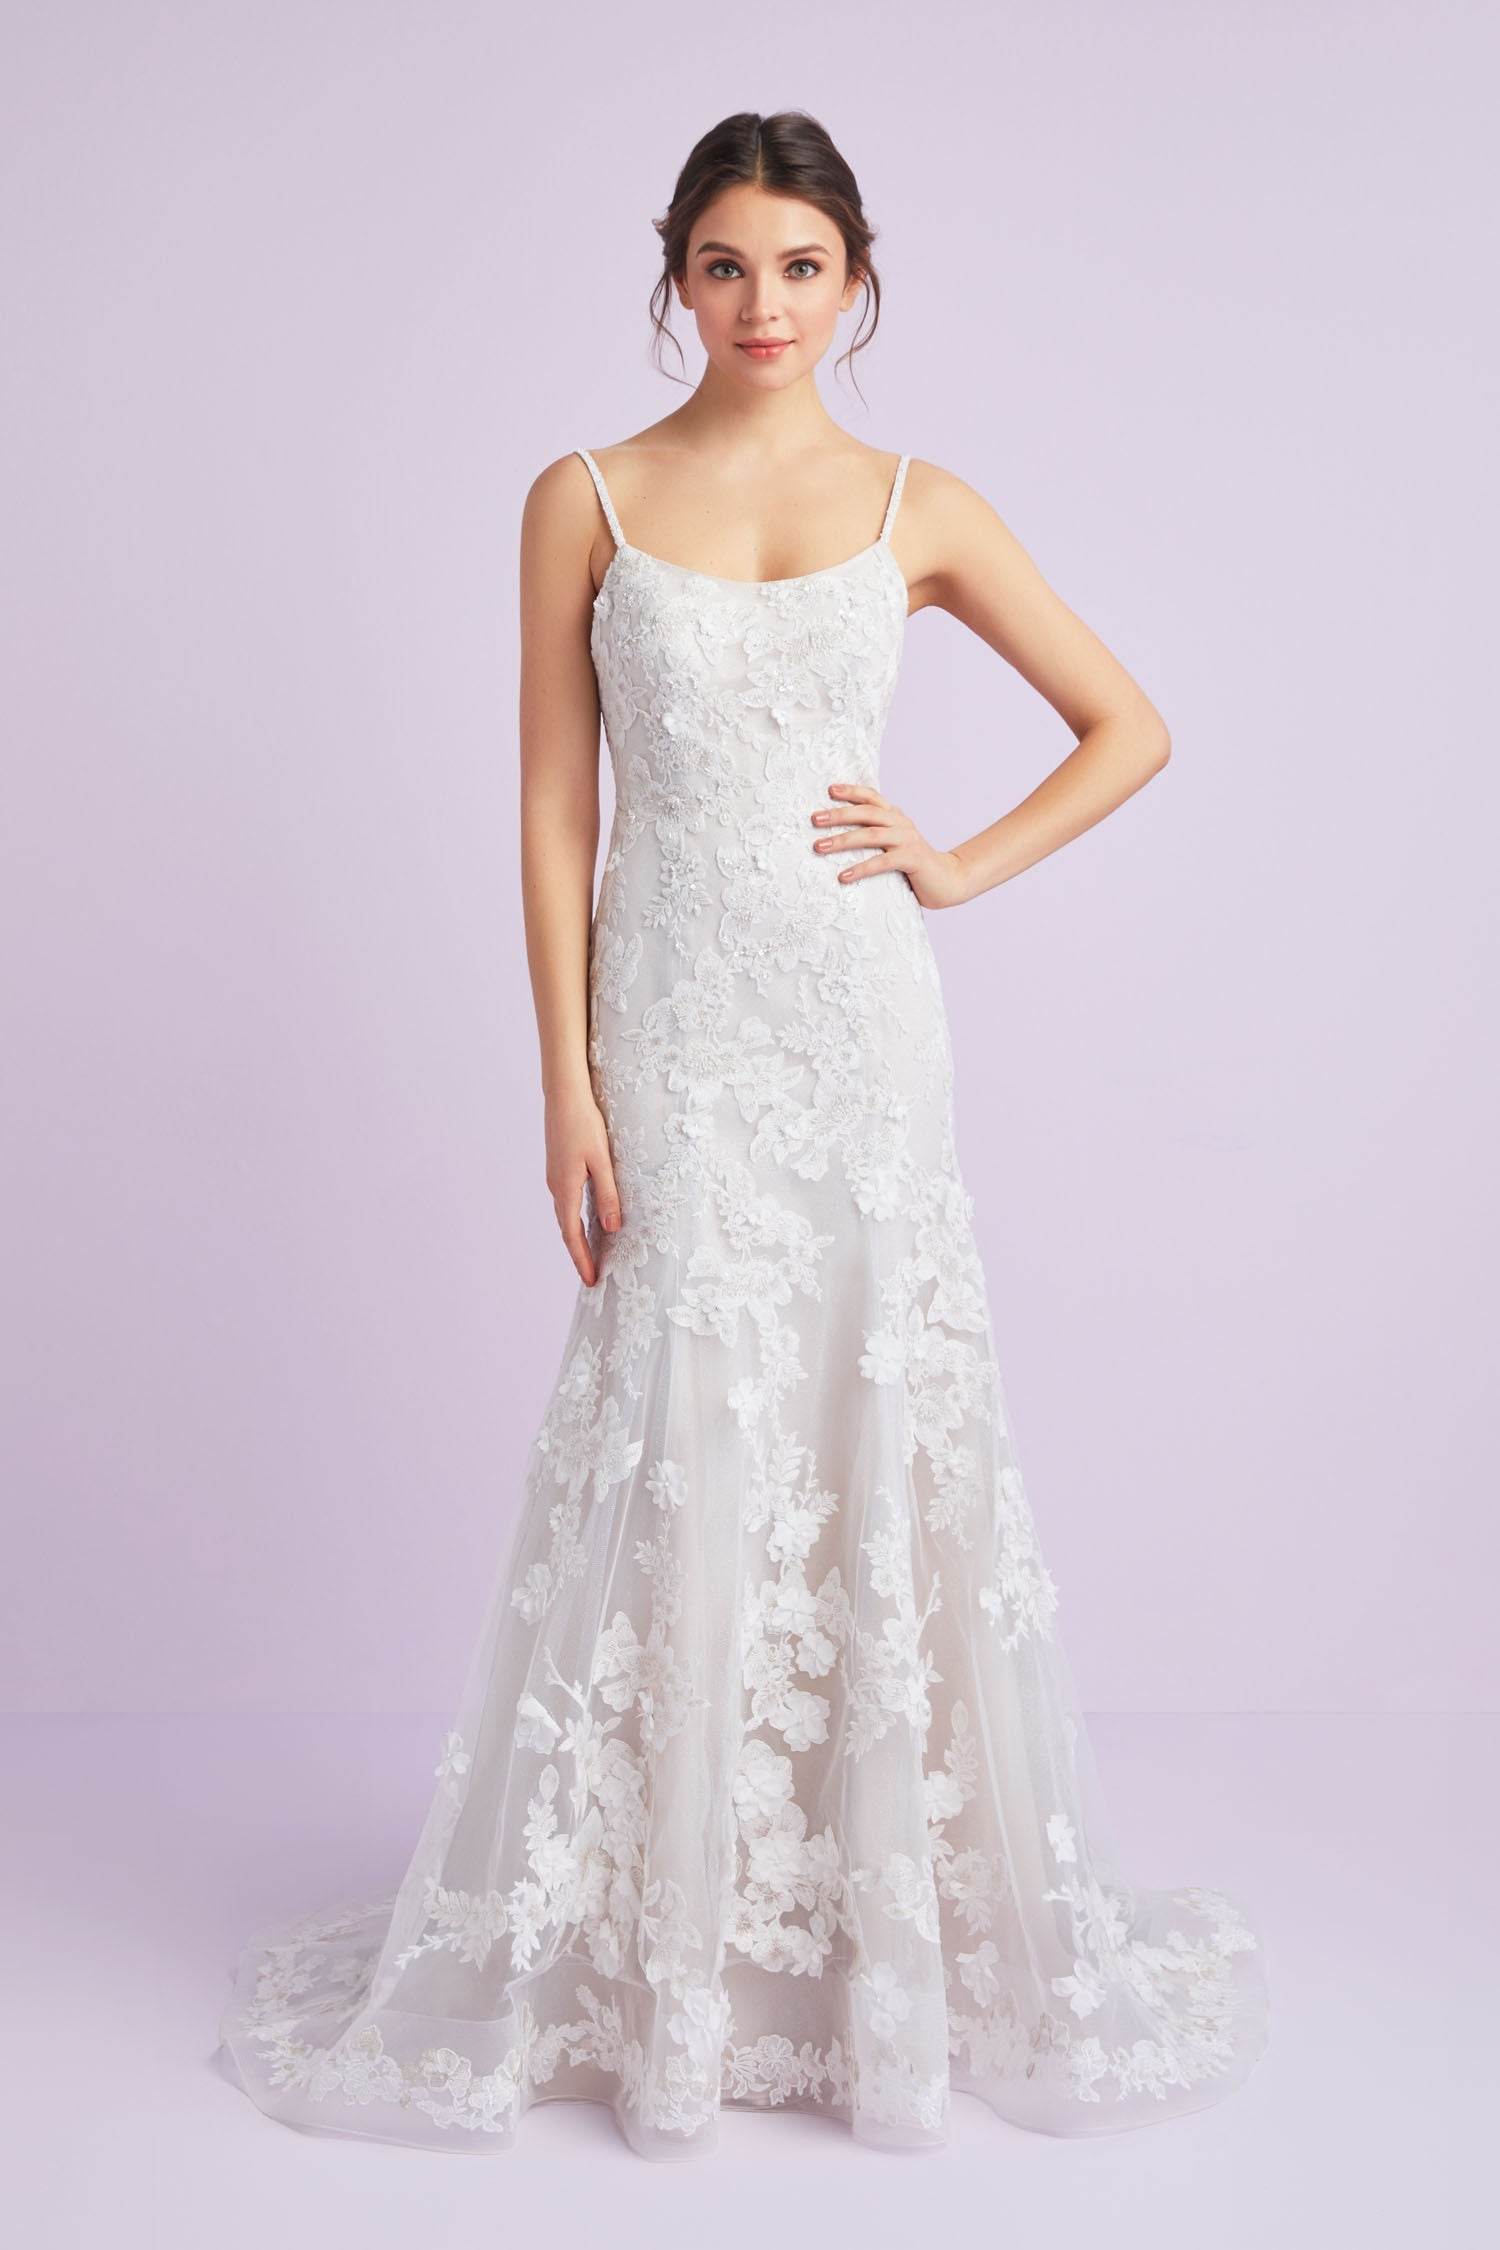 329e9e1c0e70 Affordable Wedding Dresses Online | Oleg Cassini Store